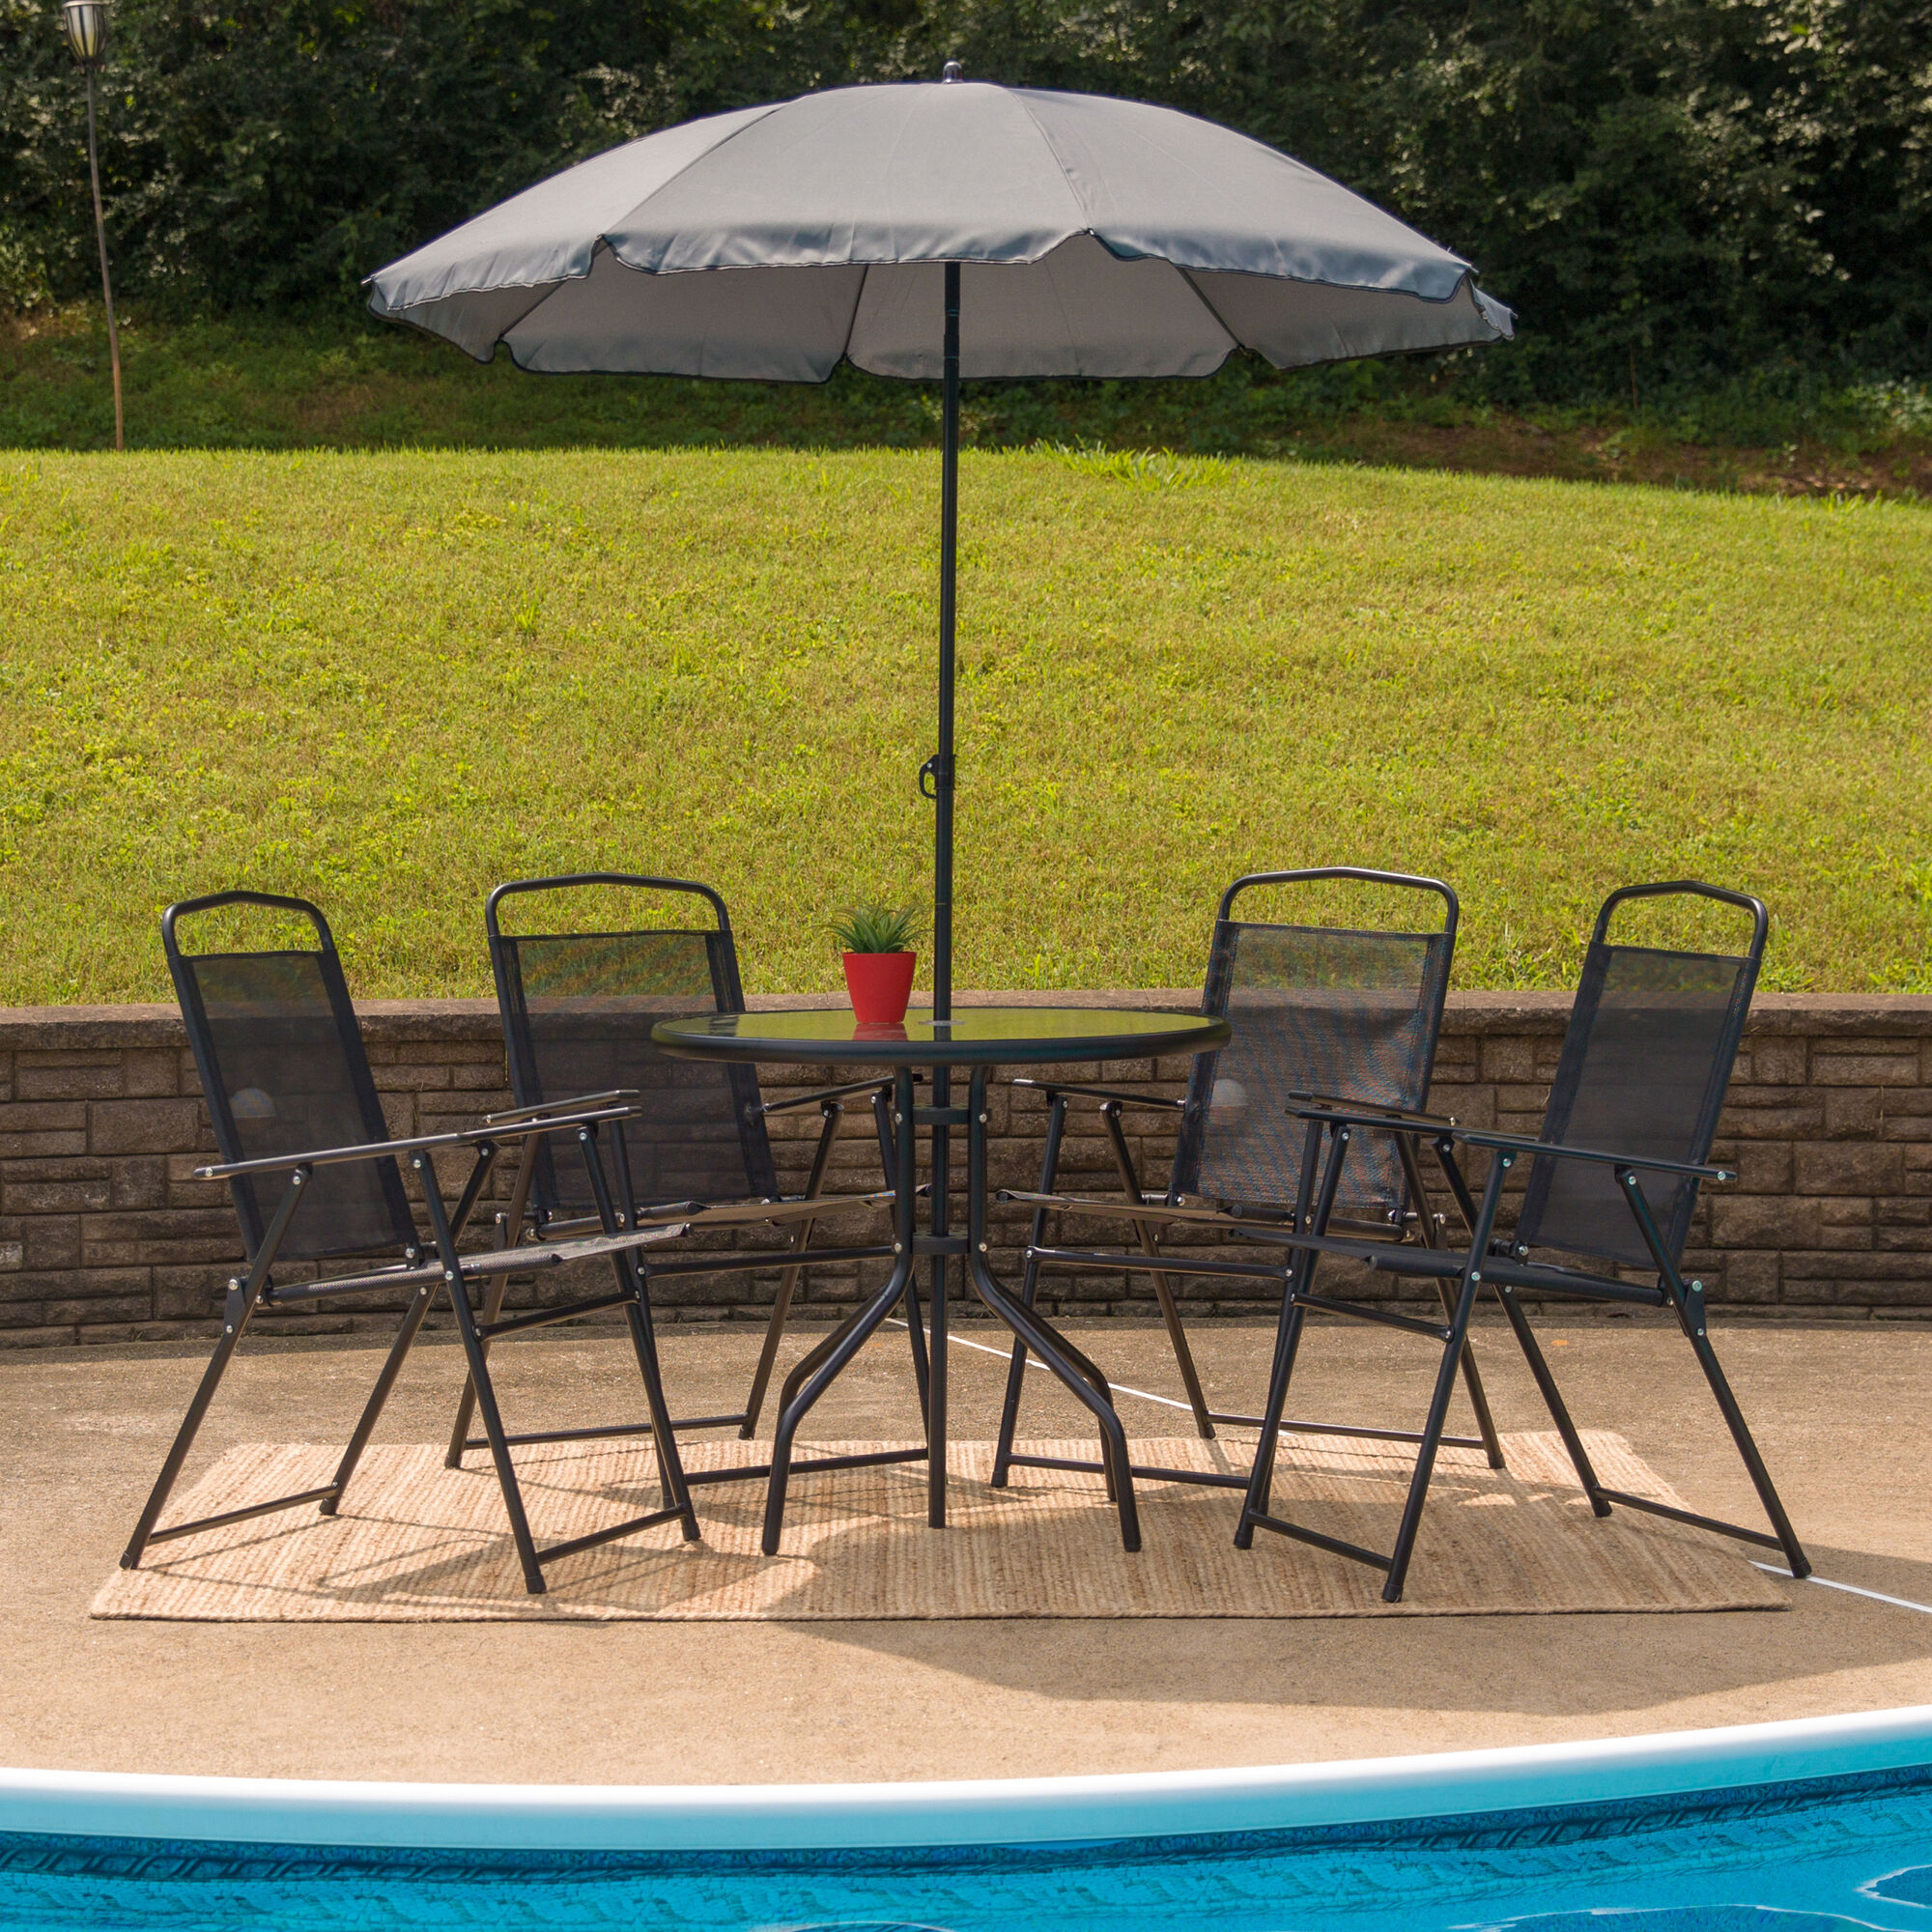 6pc Black Patio Set Amp Umbrella Gm 202012 Bk Gg